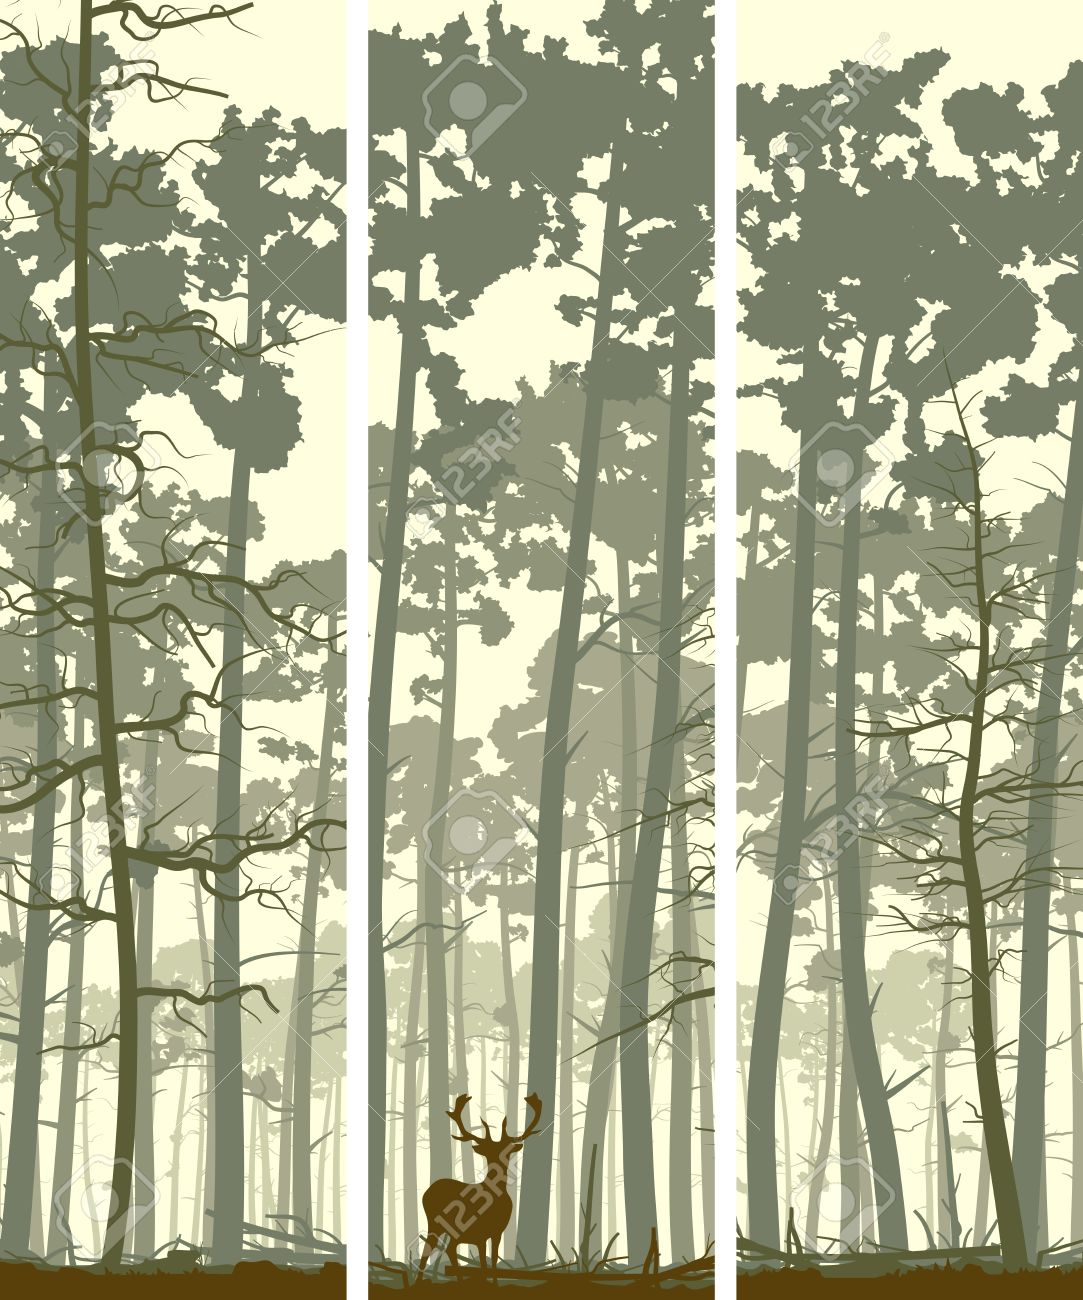 Vertical abstract banners of wild deer in forest with trunks of pine trees. - 22698203